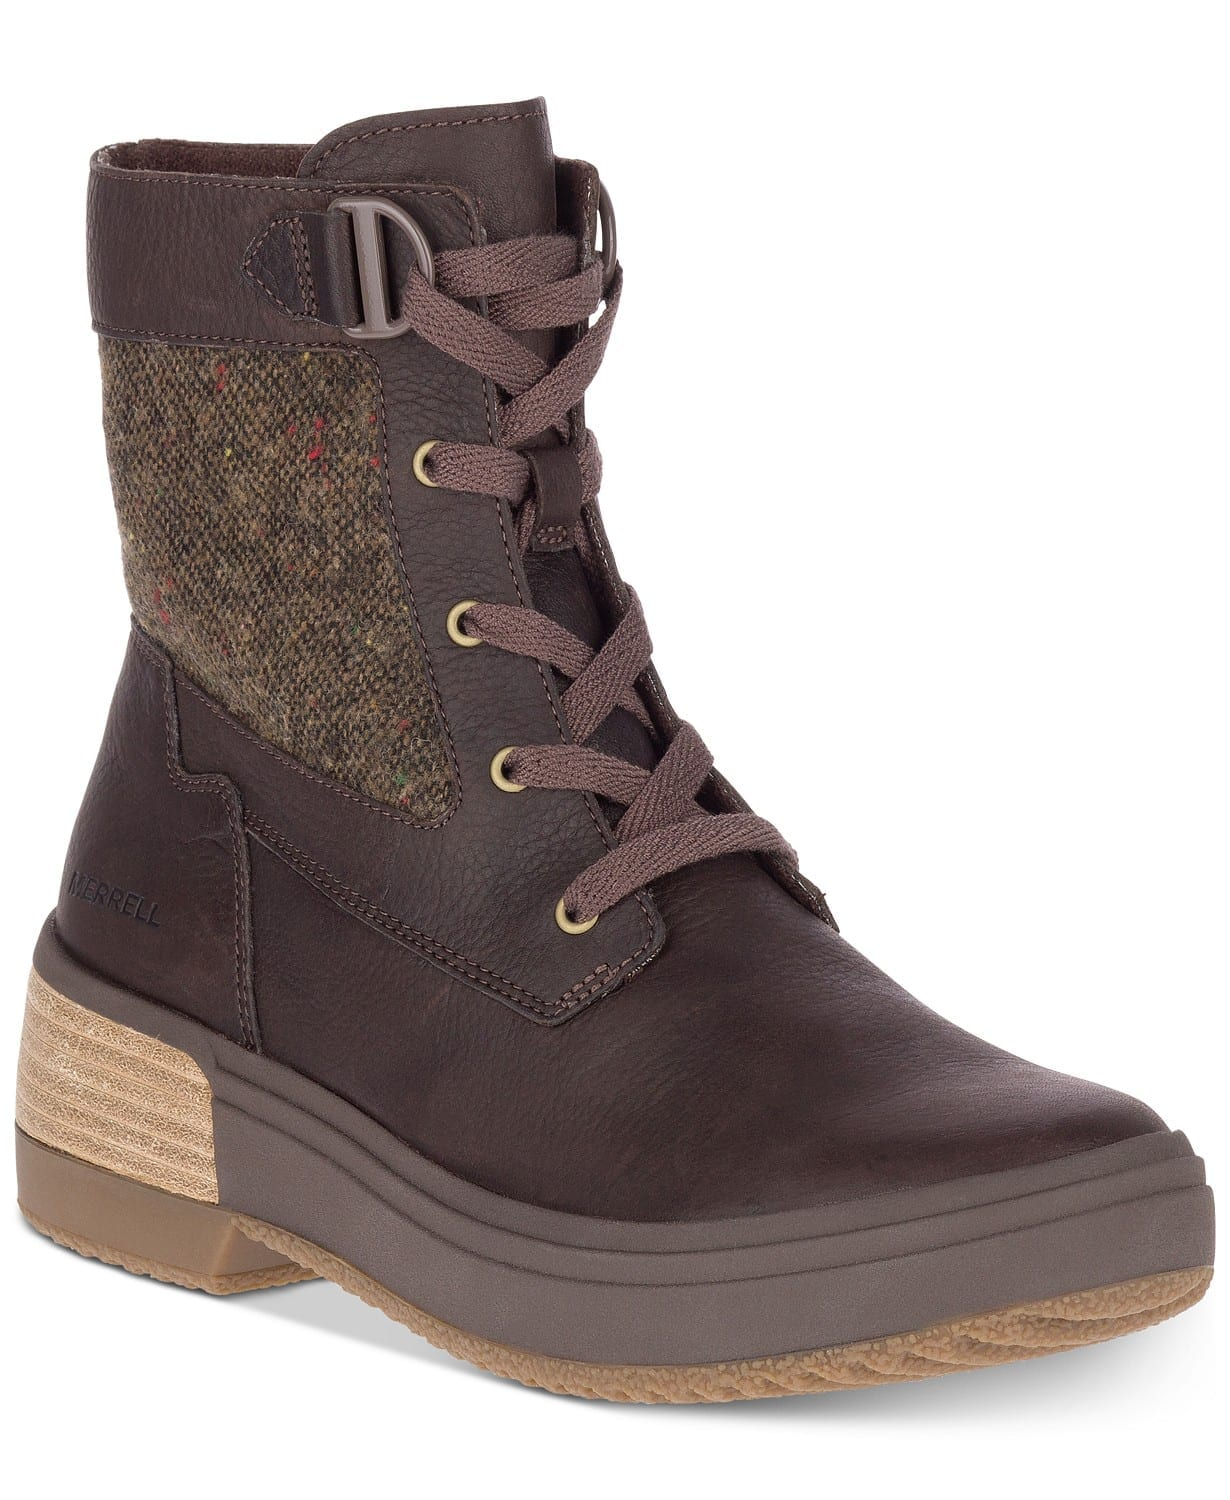 Macy's: Last Act Boots up to 65% off.